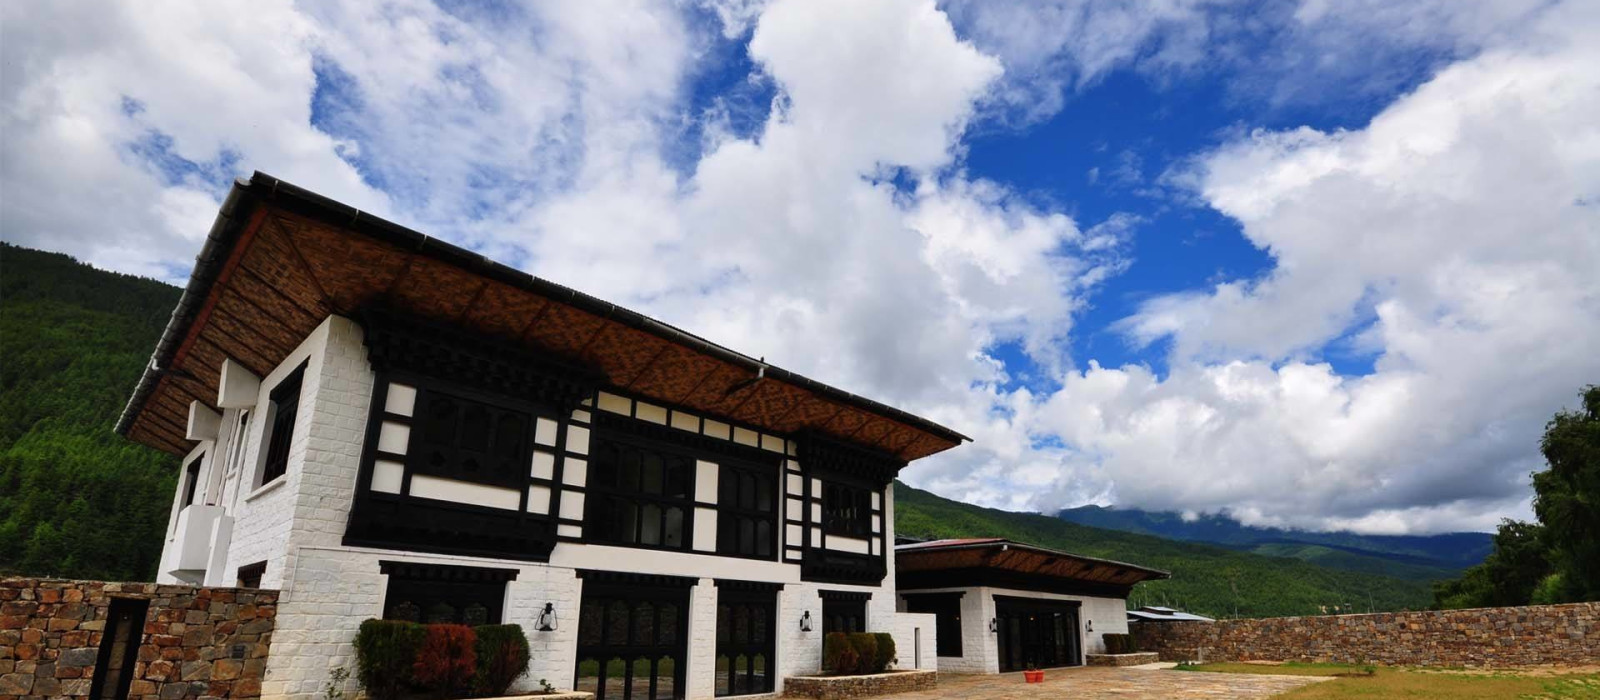 Hotel The Village Lodge, Bumthang Bhutan